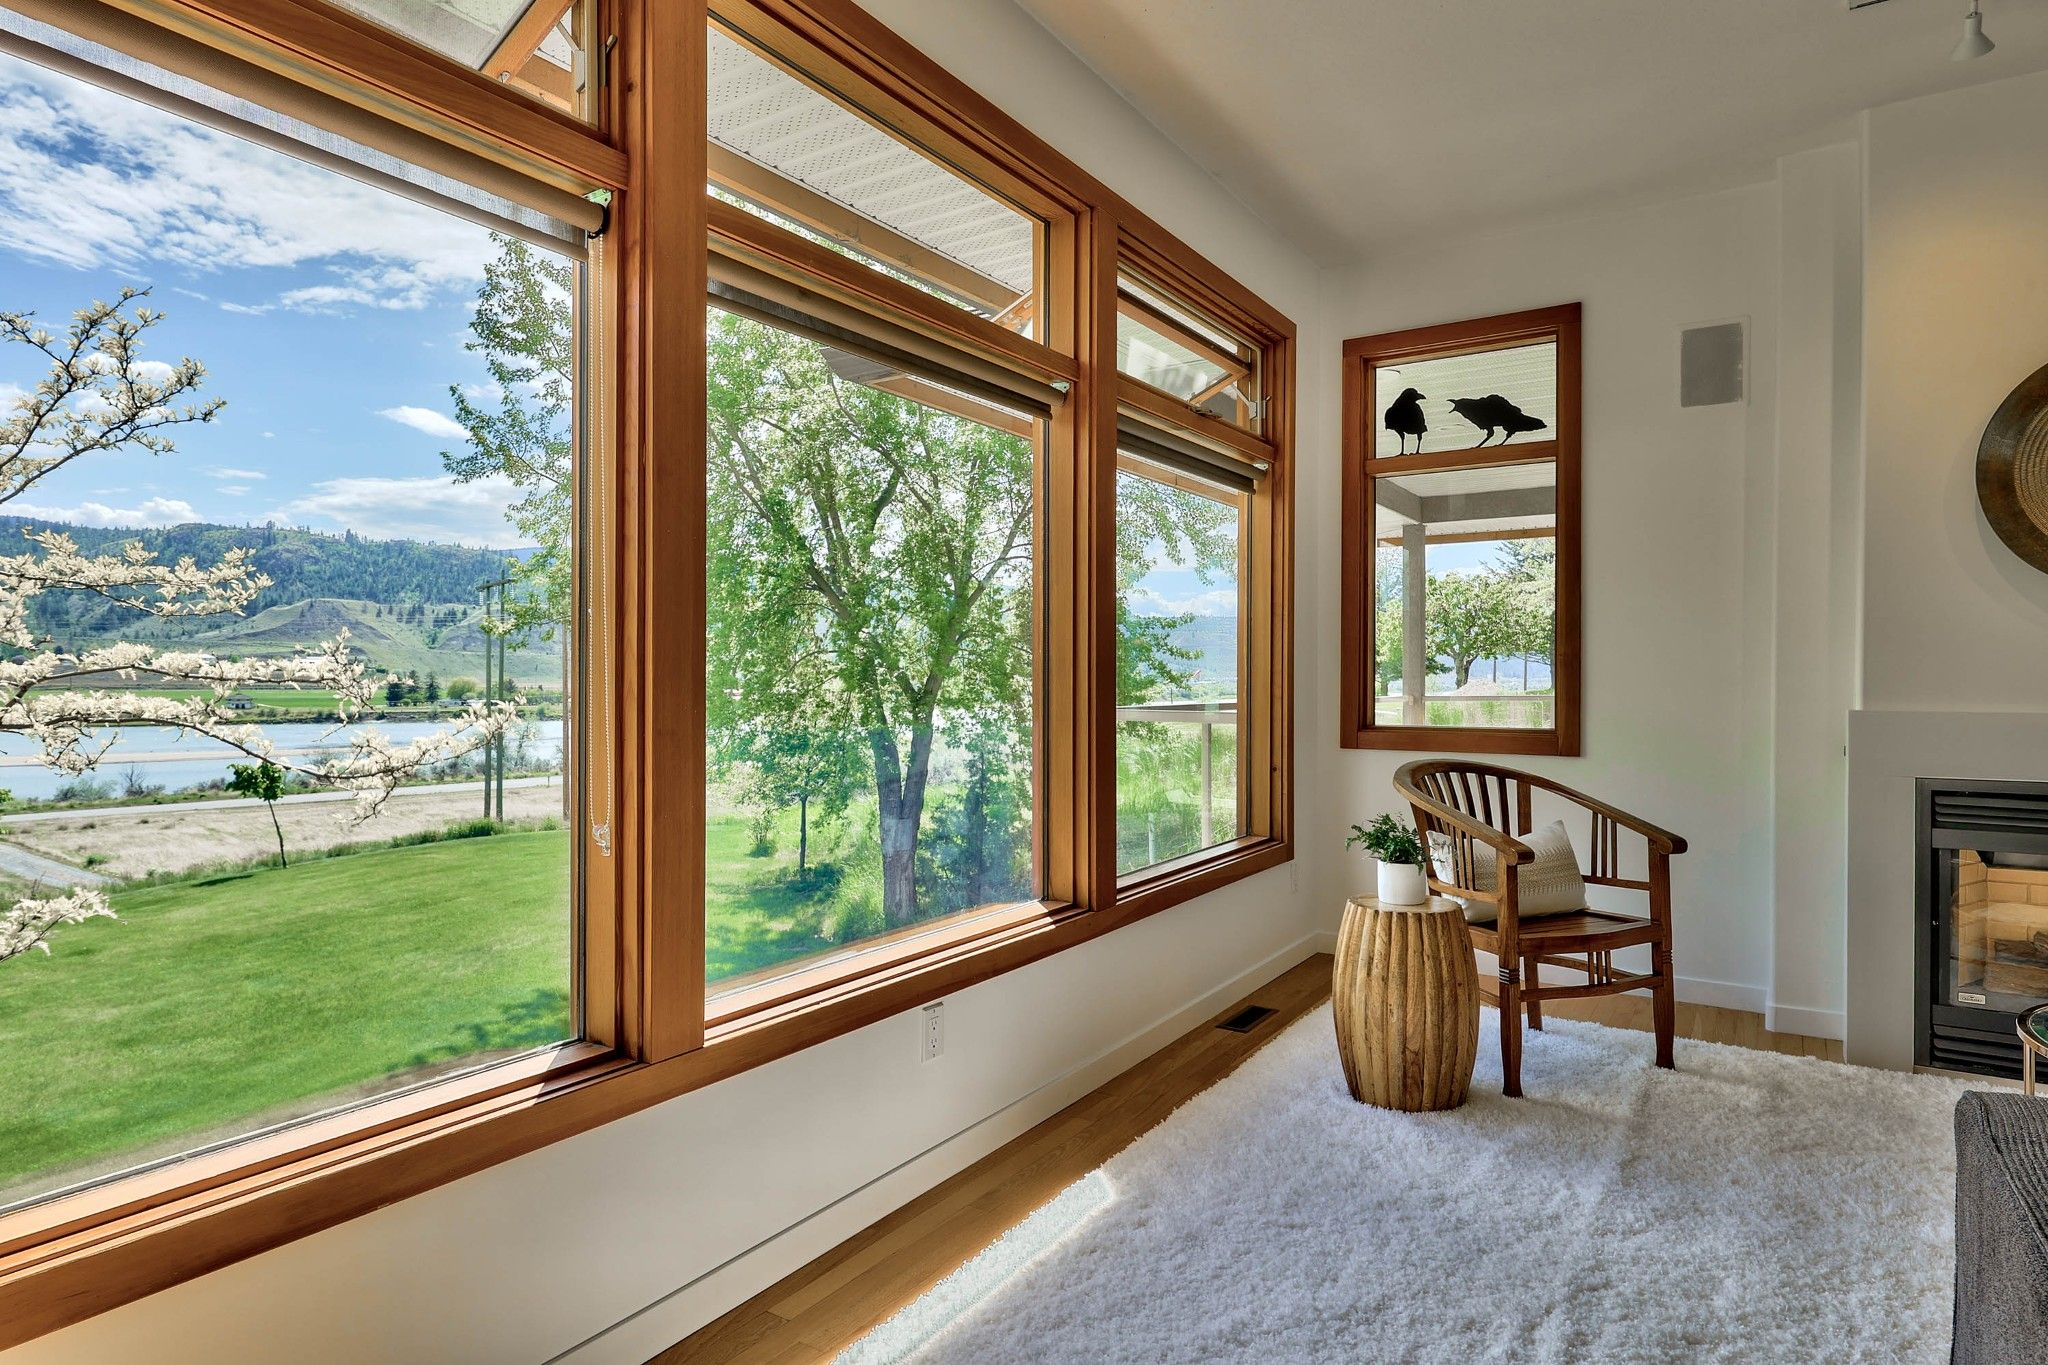 Photo 14: Photos: 3299 E Shuswap Road in Kamloops: South Thompson Valley House for sale : MLS®# 162162